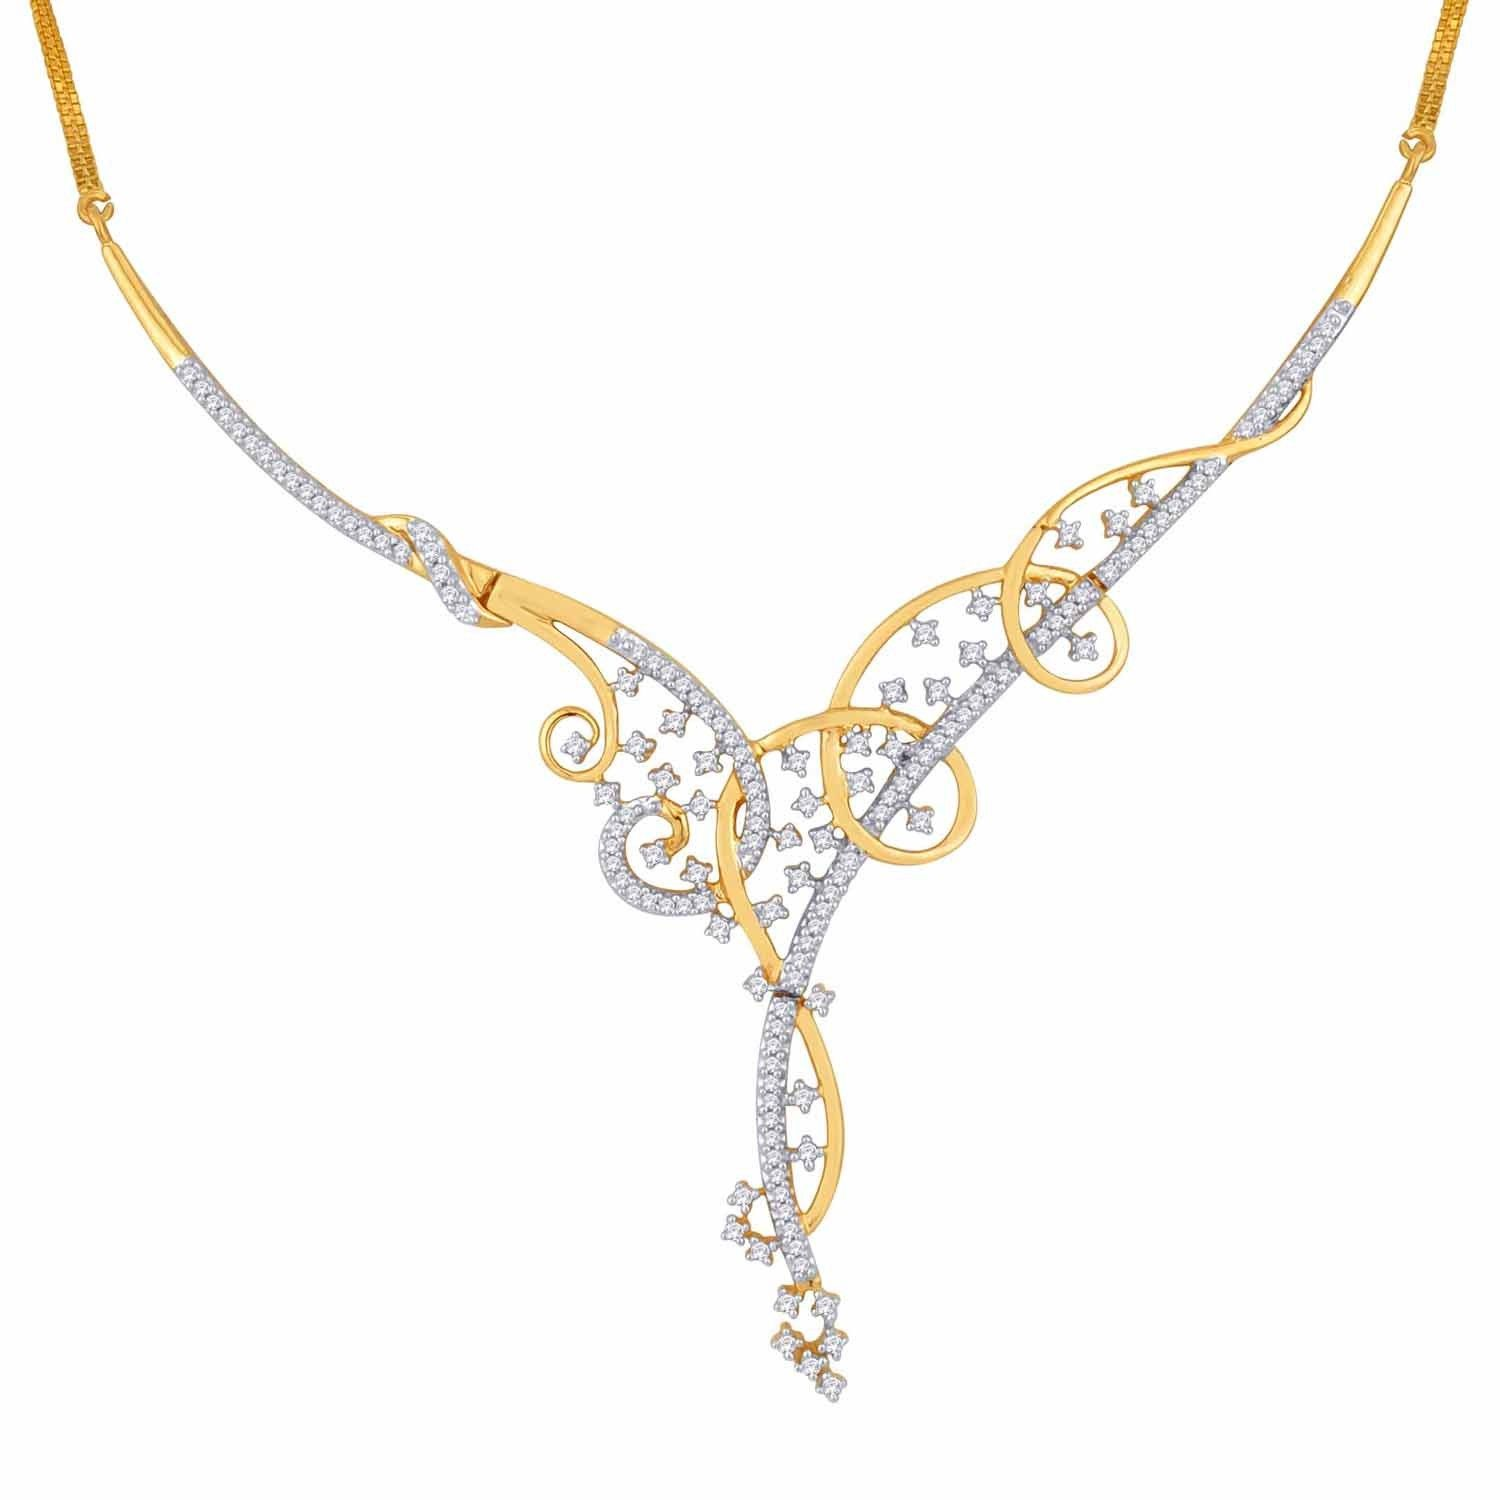 Buy online Gift beautiful #cheapchokernecklace in your girlfriend ...